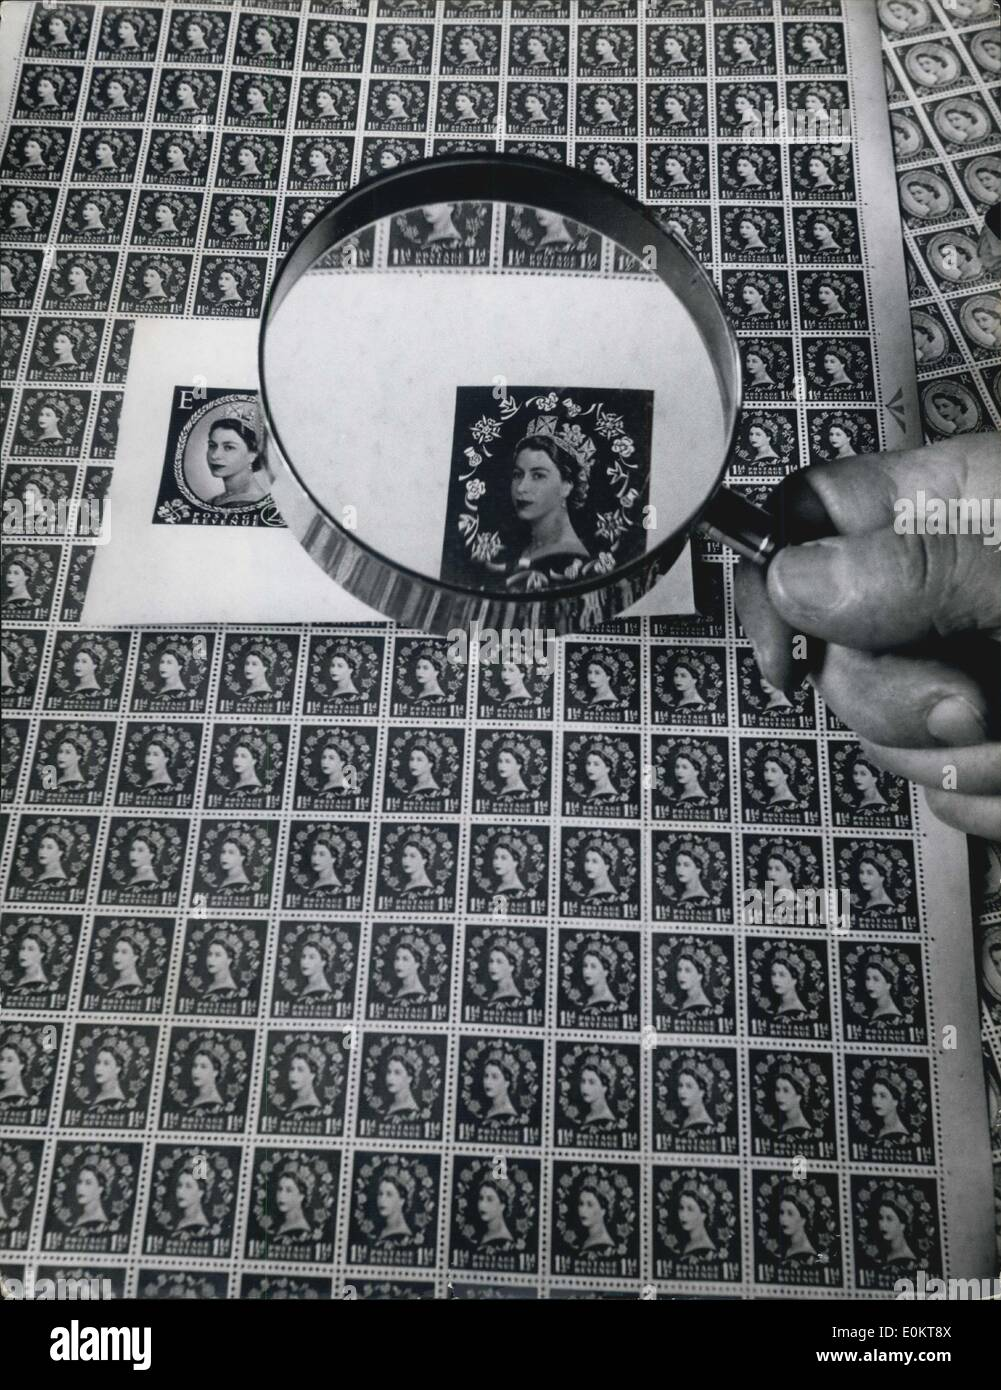 Jan 1, 1950 - Making the New postage stamps - 24 million of them: A checker uses a magnifying glass to look for rare flaws in the sheets of stamps which are being rushed through for general issue next week. They are printed at a High Wycombe factory. (exact date unknown) - Stock Image